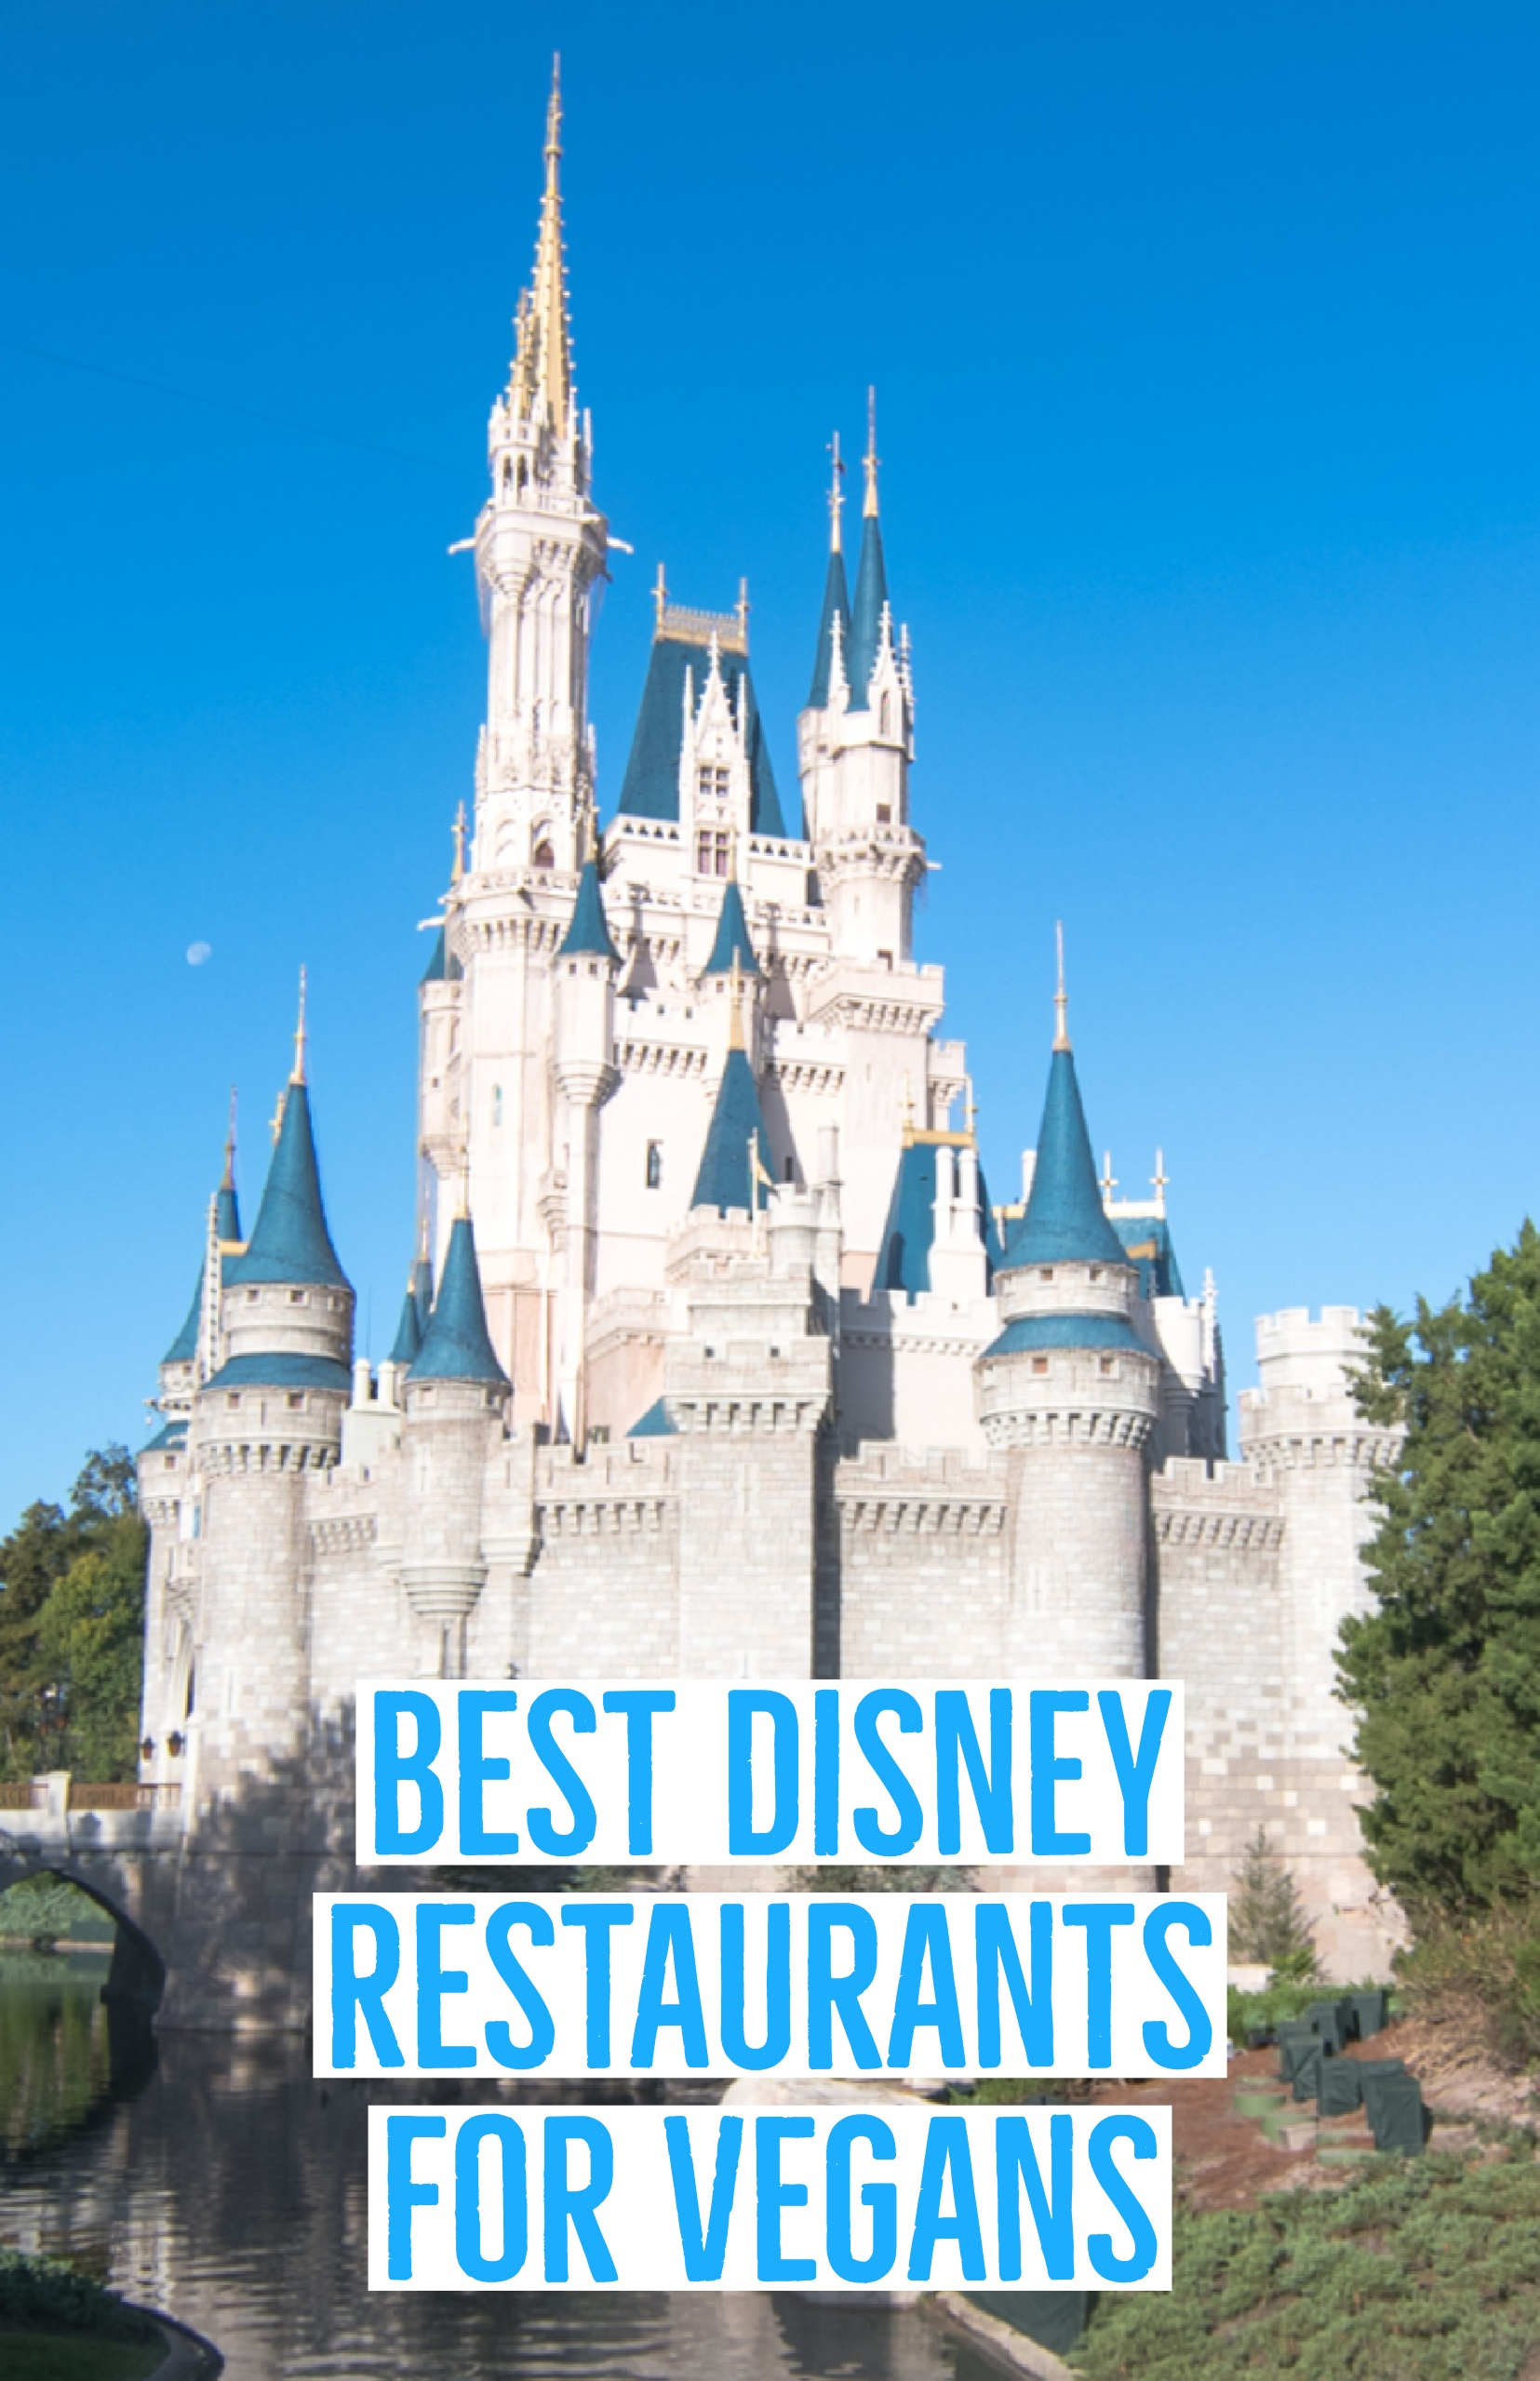 A guide to the Best Disney Restaurants for Vegans. #disneyworld #vegan